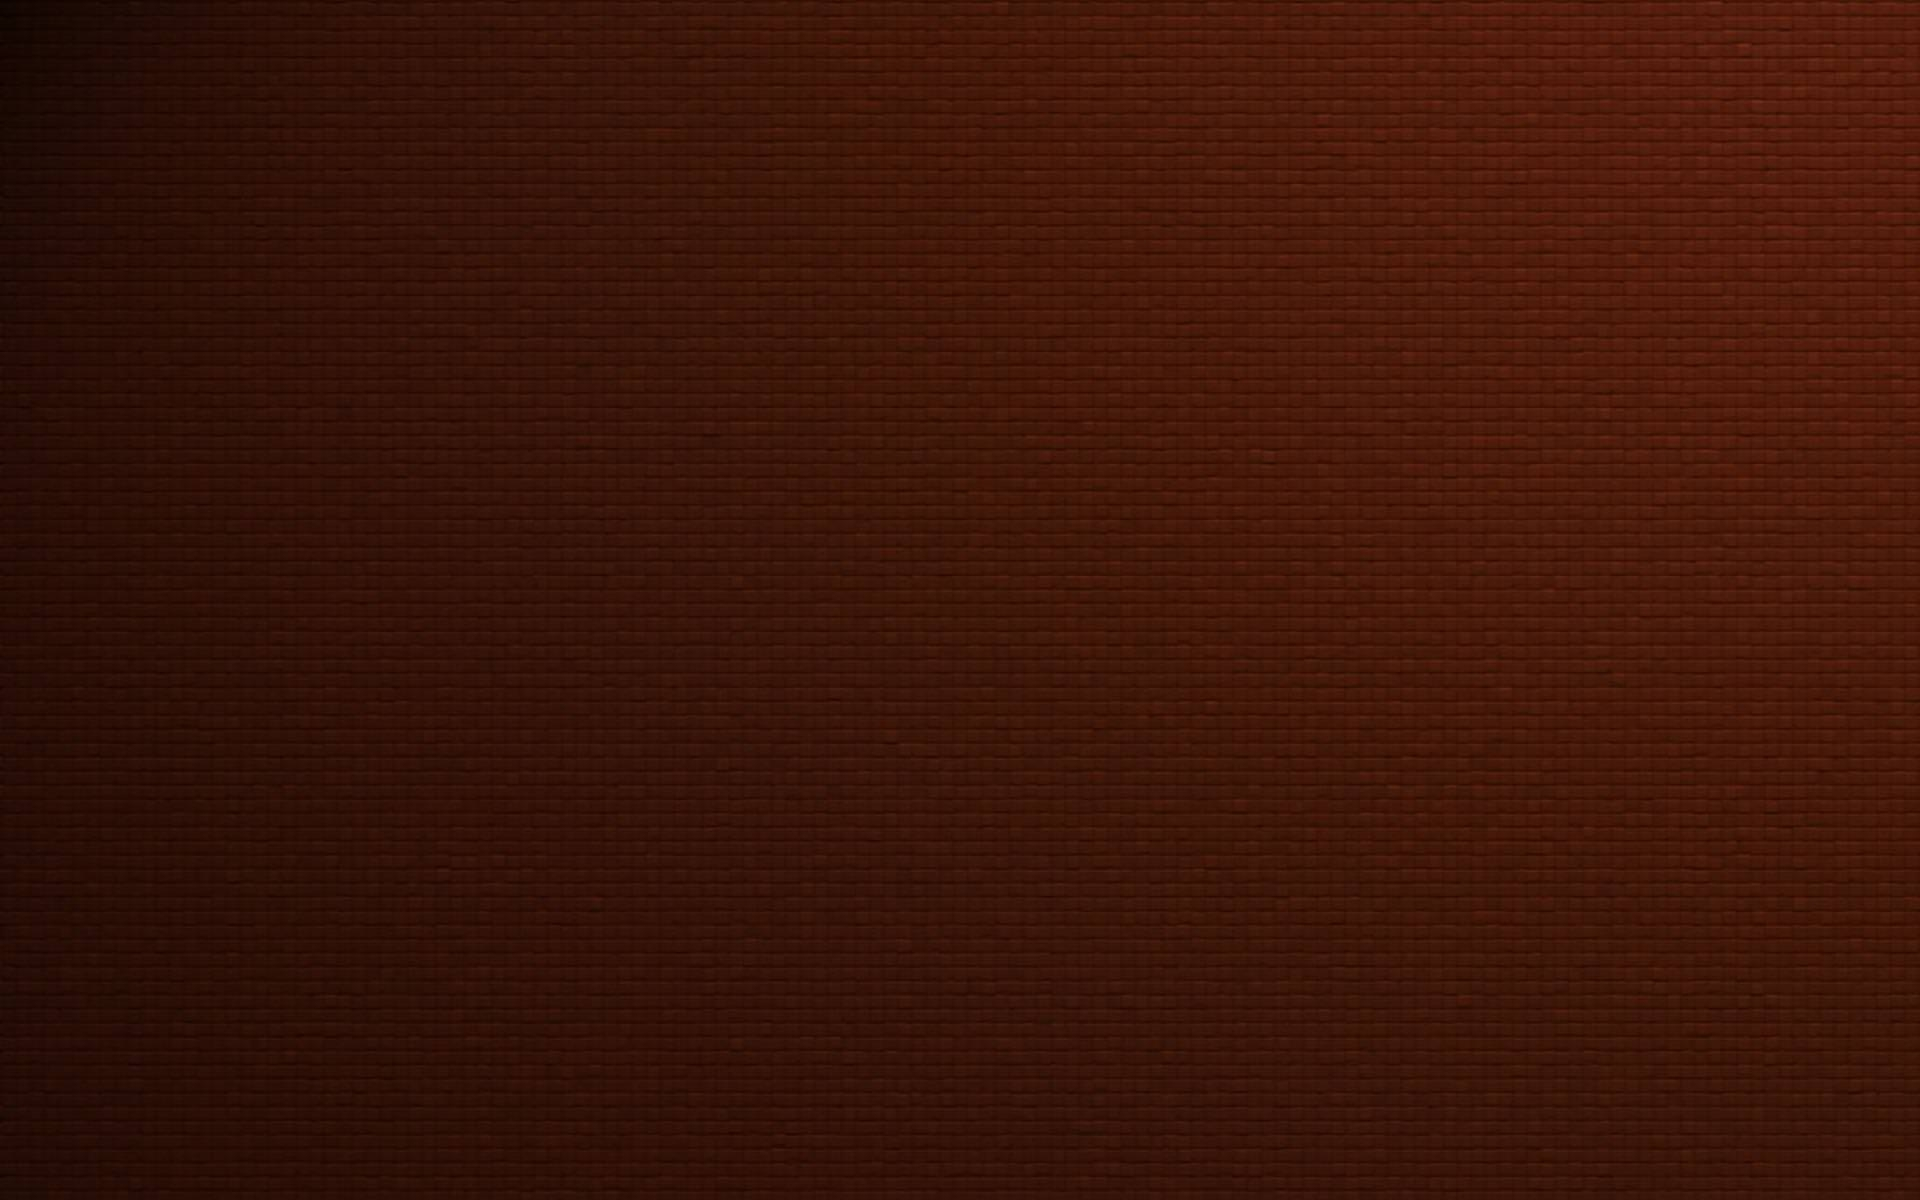 Brown Grunge HD wallpaper Background